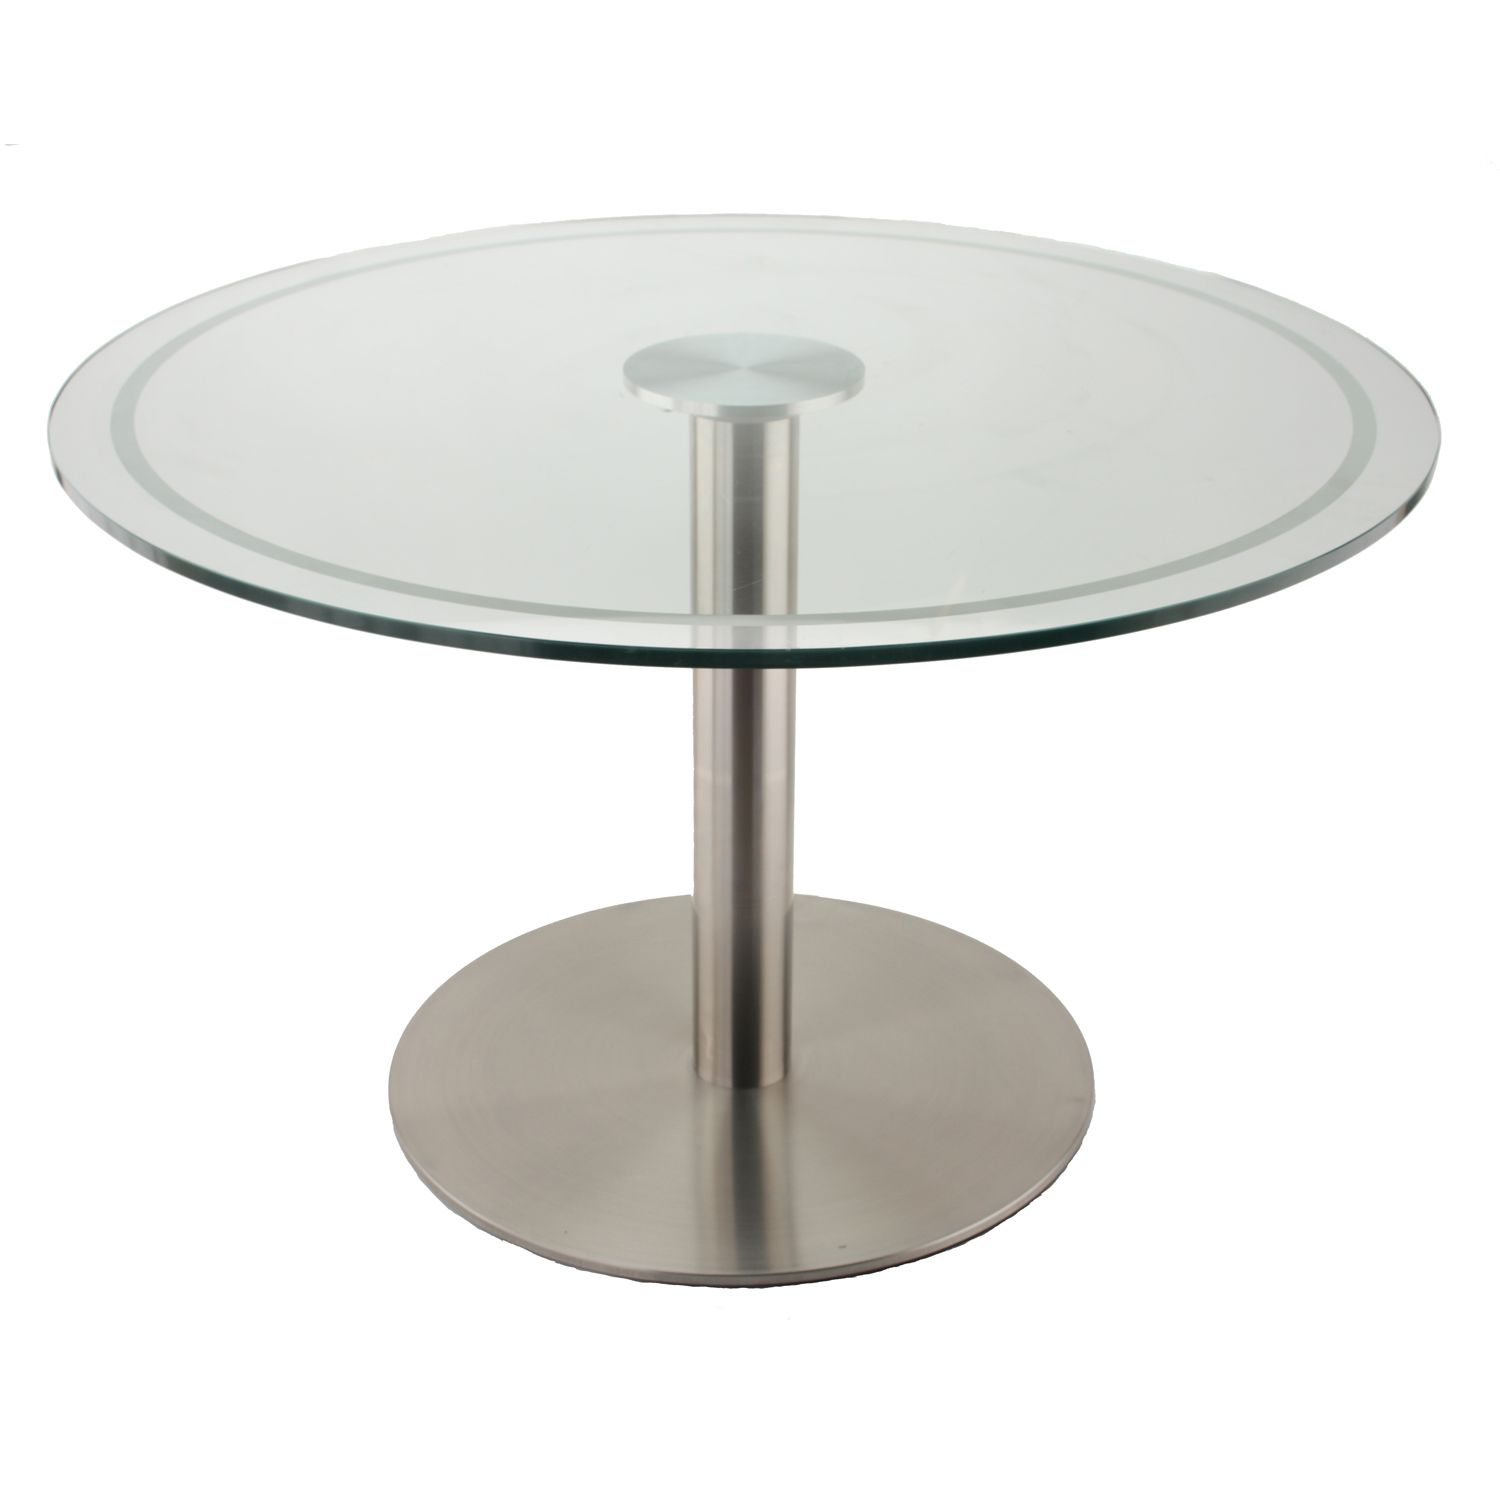 RFL750 Stainless Steel Table Base with Glass Table Top